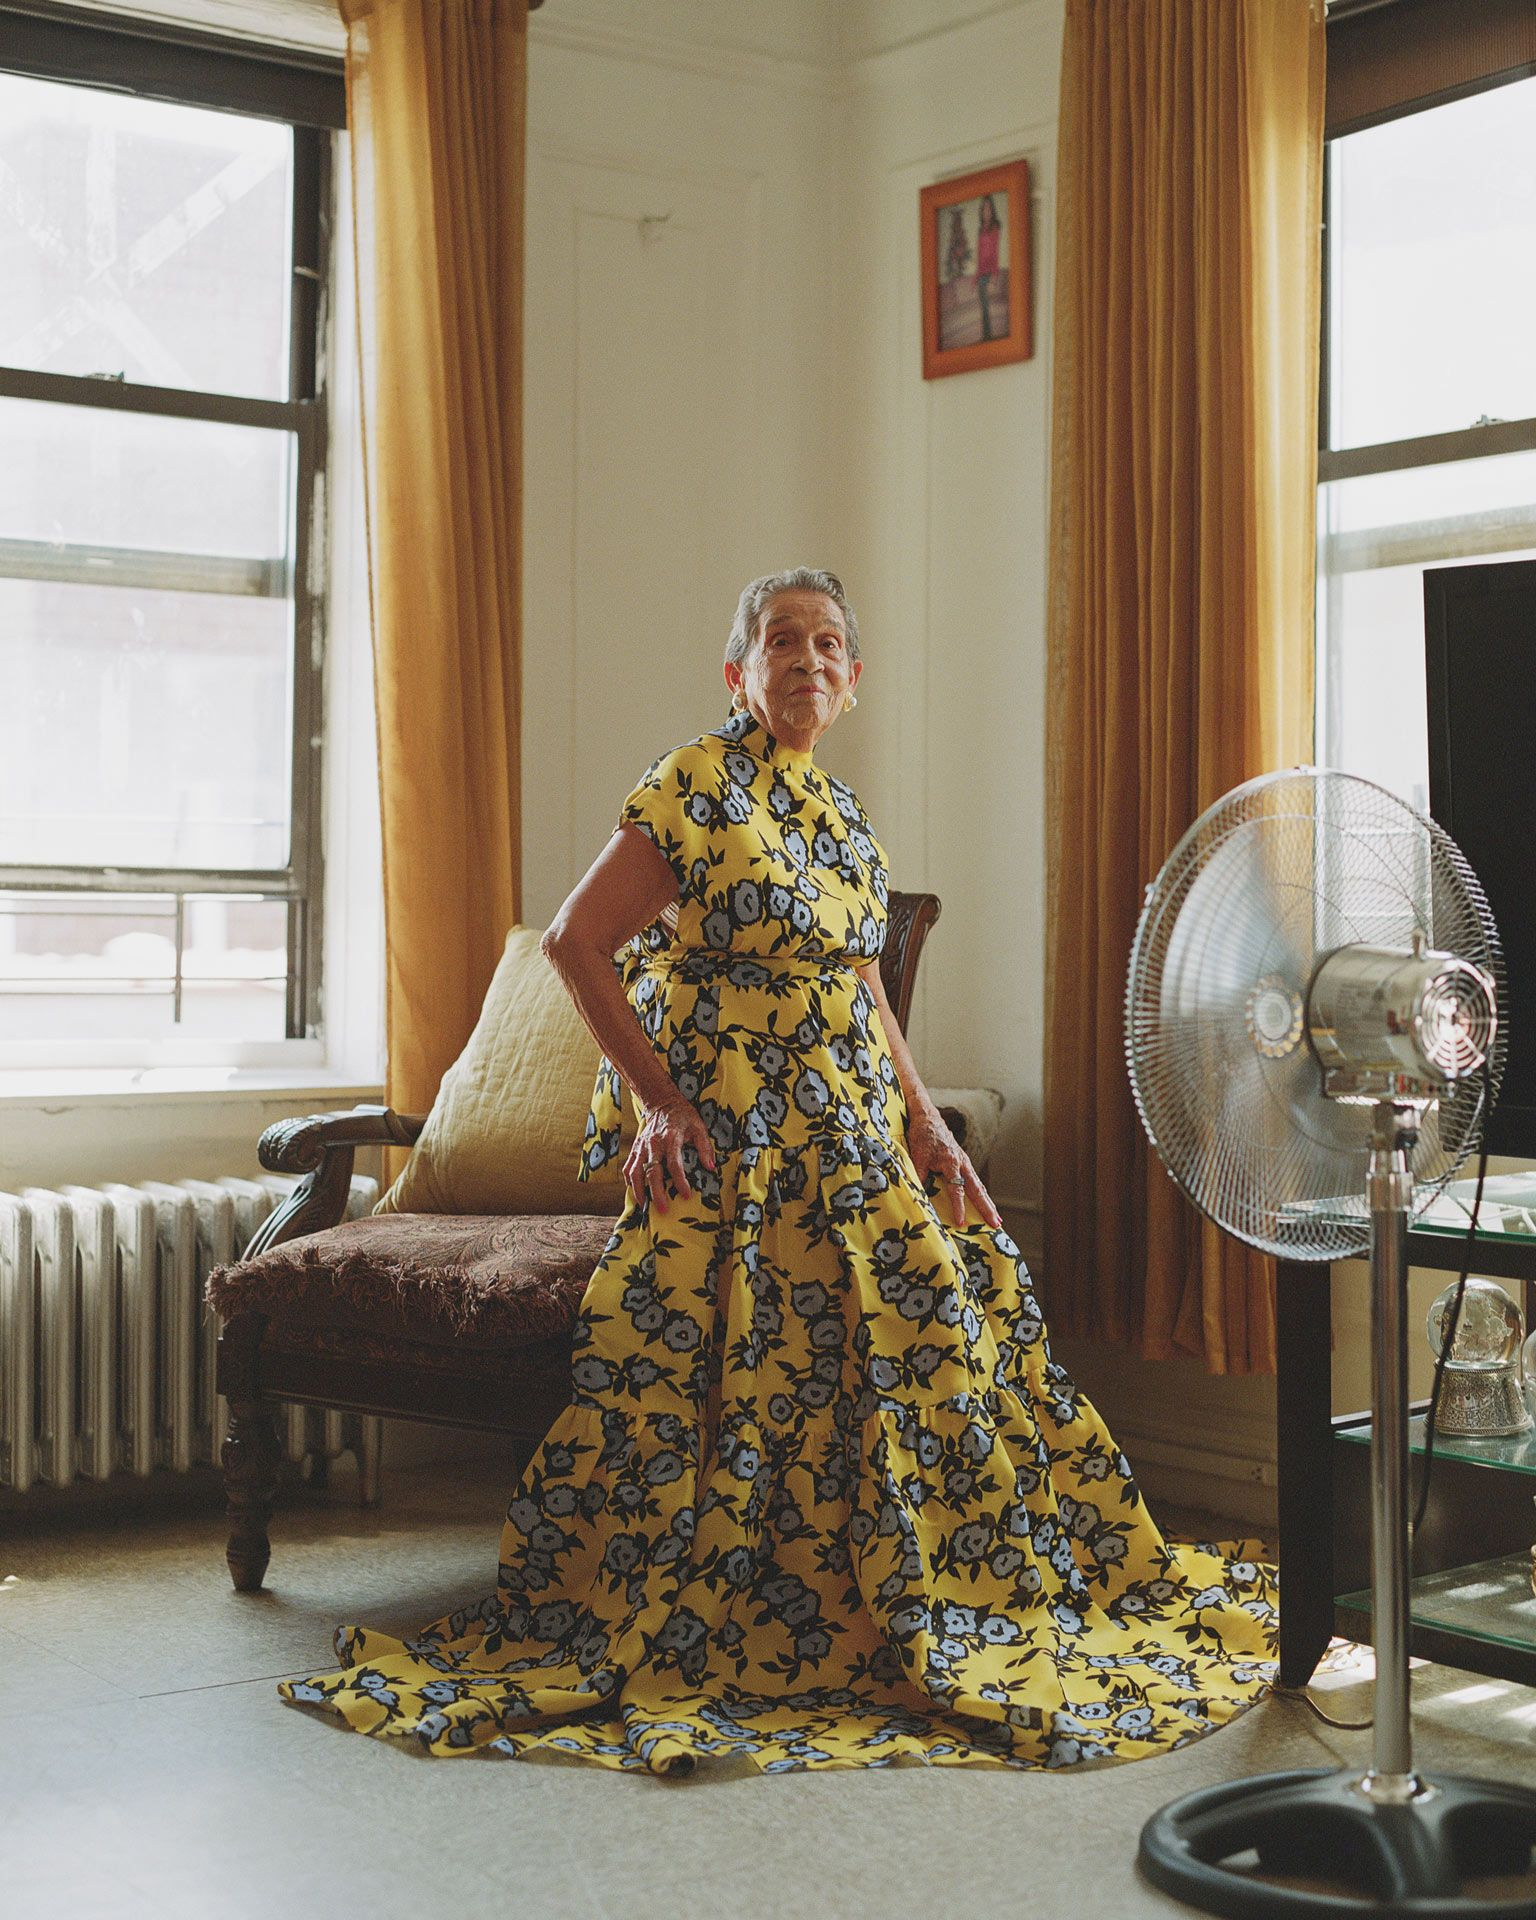 portrait of Altagracia de Pena sitting on an armchair wearing a long yellow dress by Oumayma B. Tanfous for Phosphenes Magazine